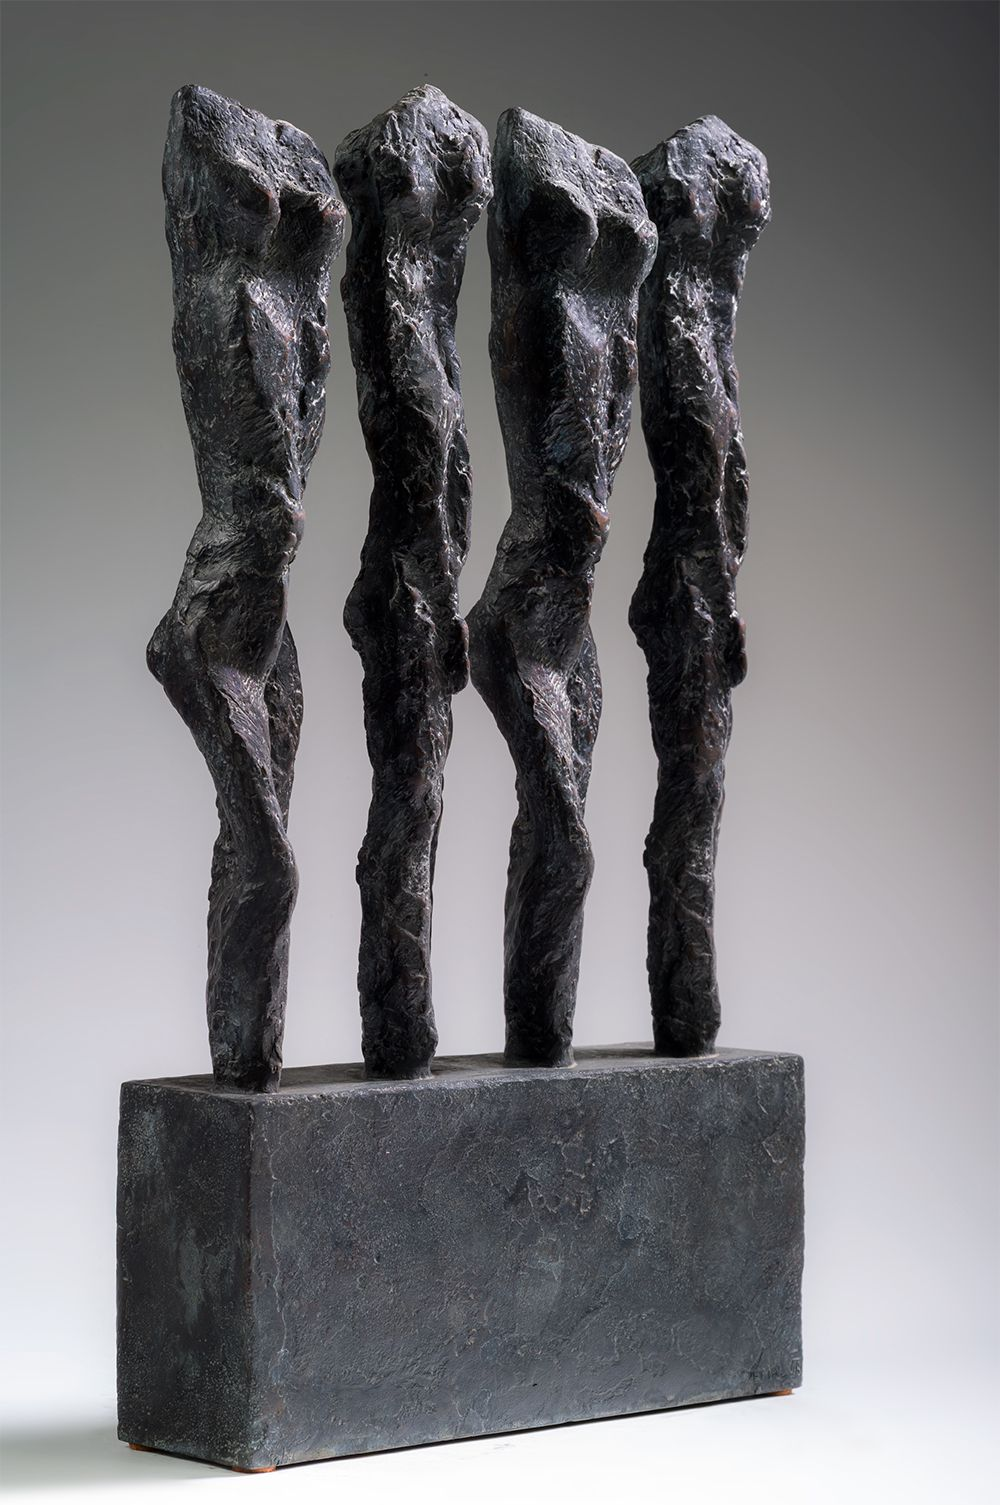 In line, Primary Forms series - Martine Demal - Sculpture - detail 2